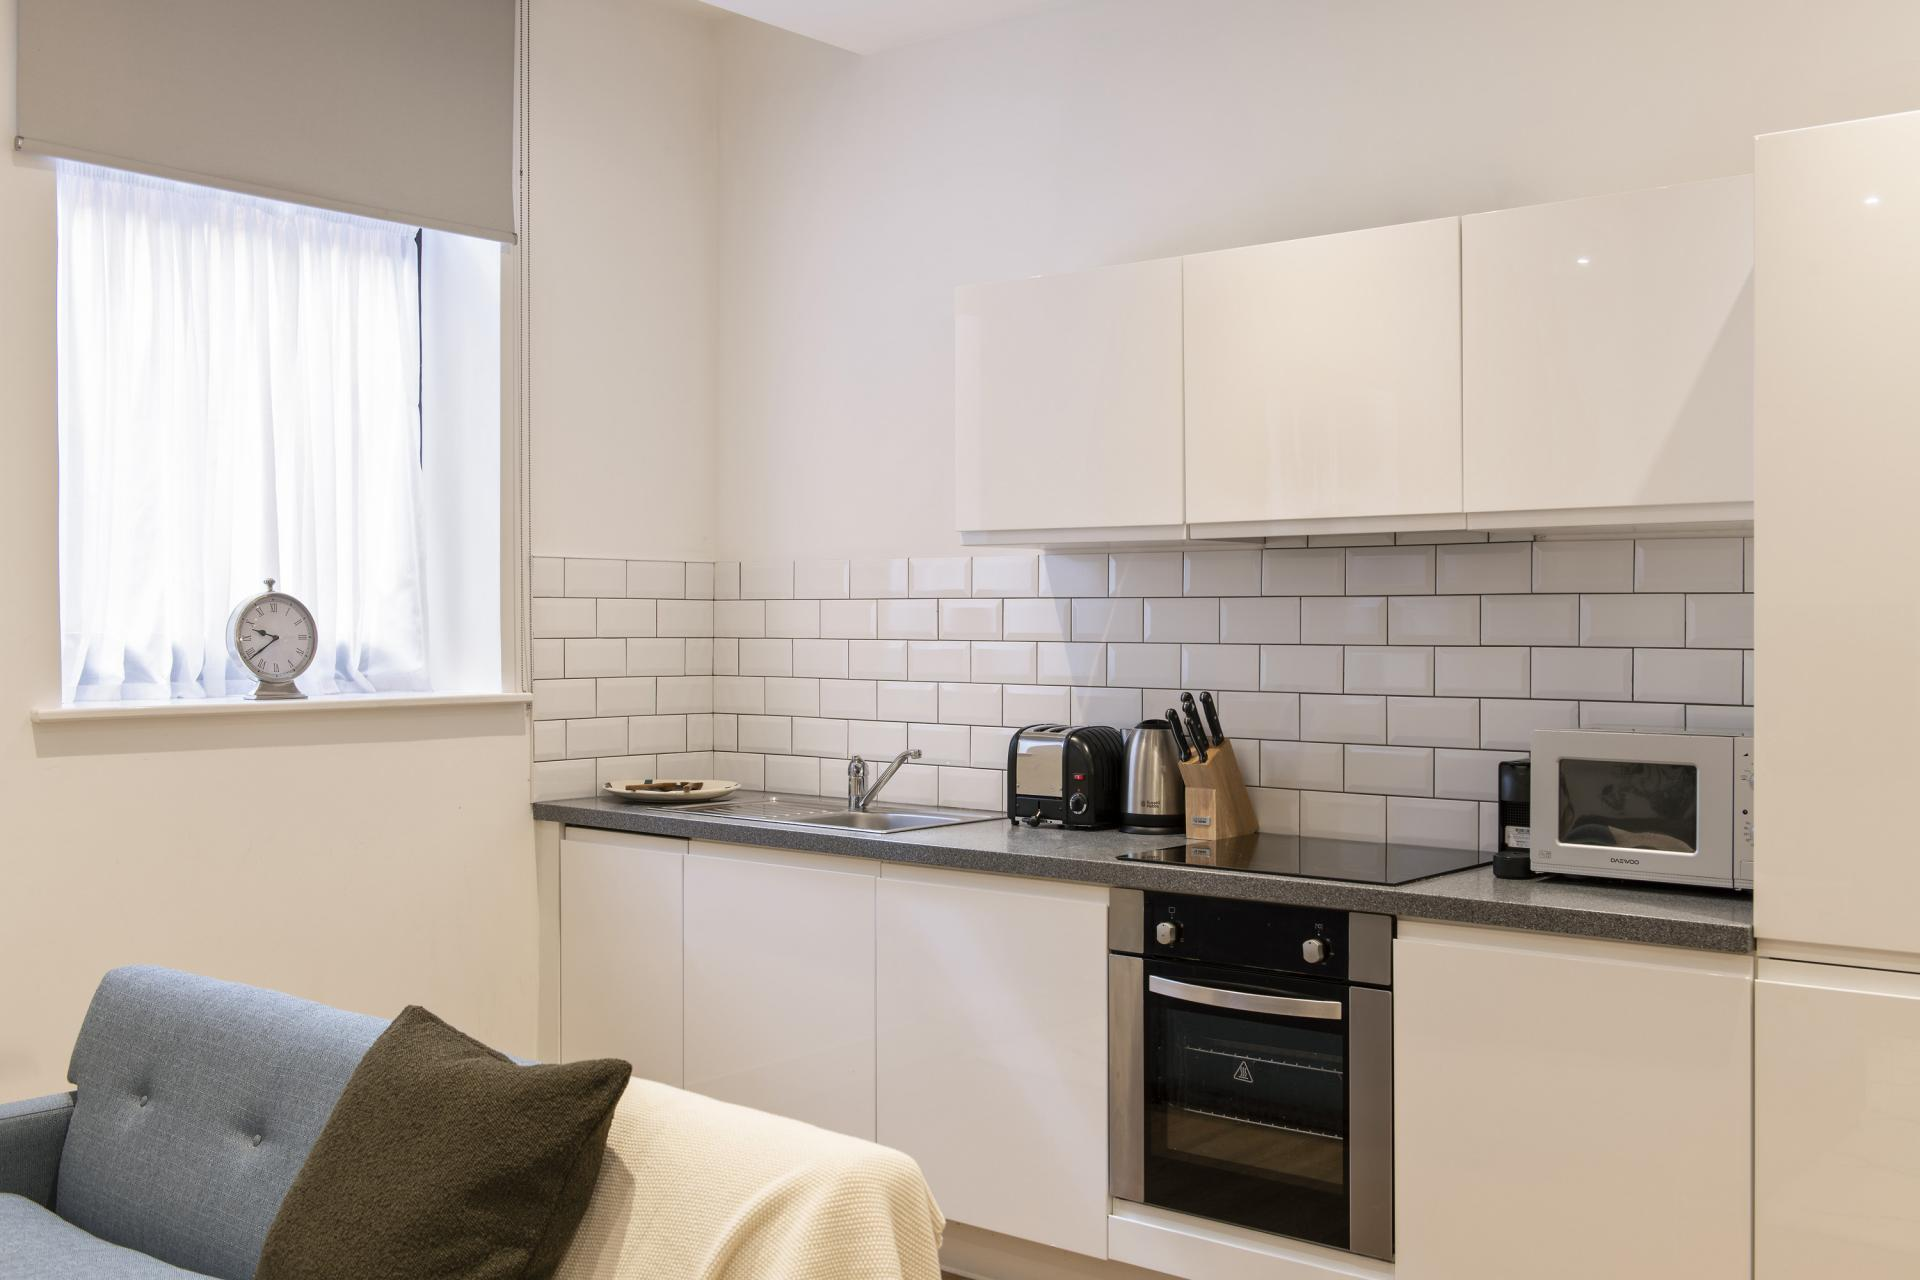 Kitchen at Cove Minshull Street, Piccadilly, Manchester - Citybase Apartments